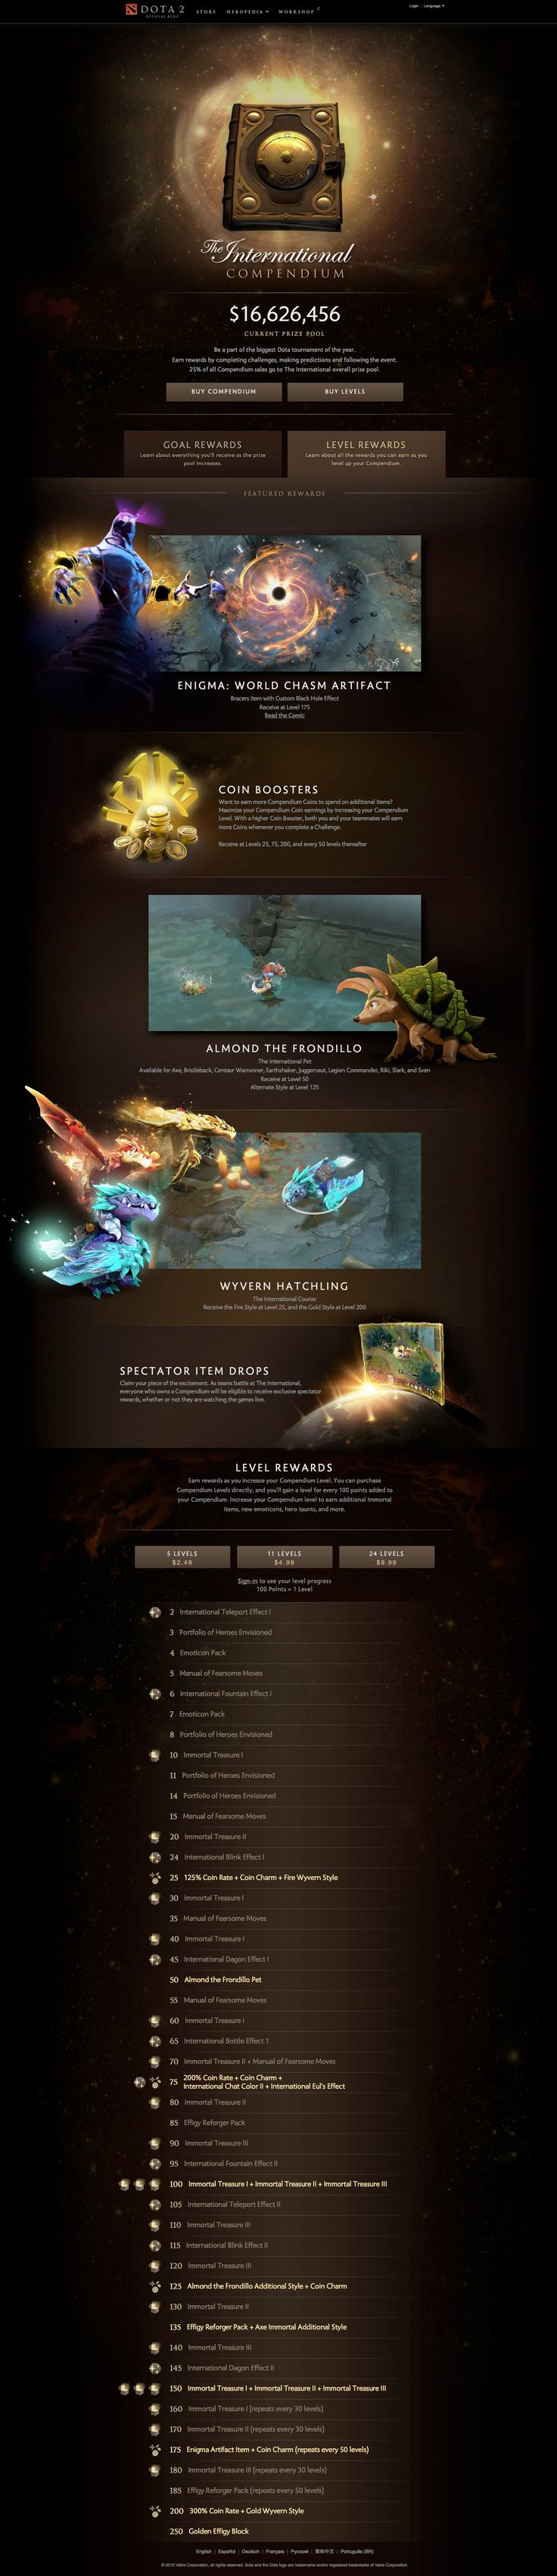 Dota 2 - the International Compendium 2015 (Level Rewards)